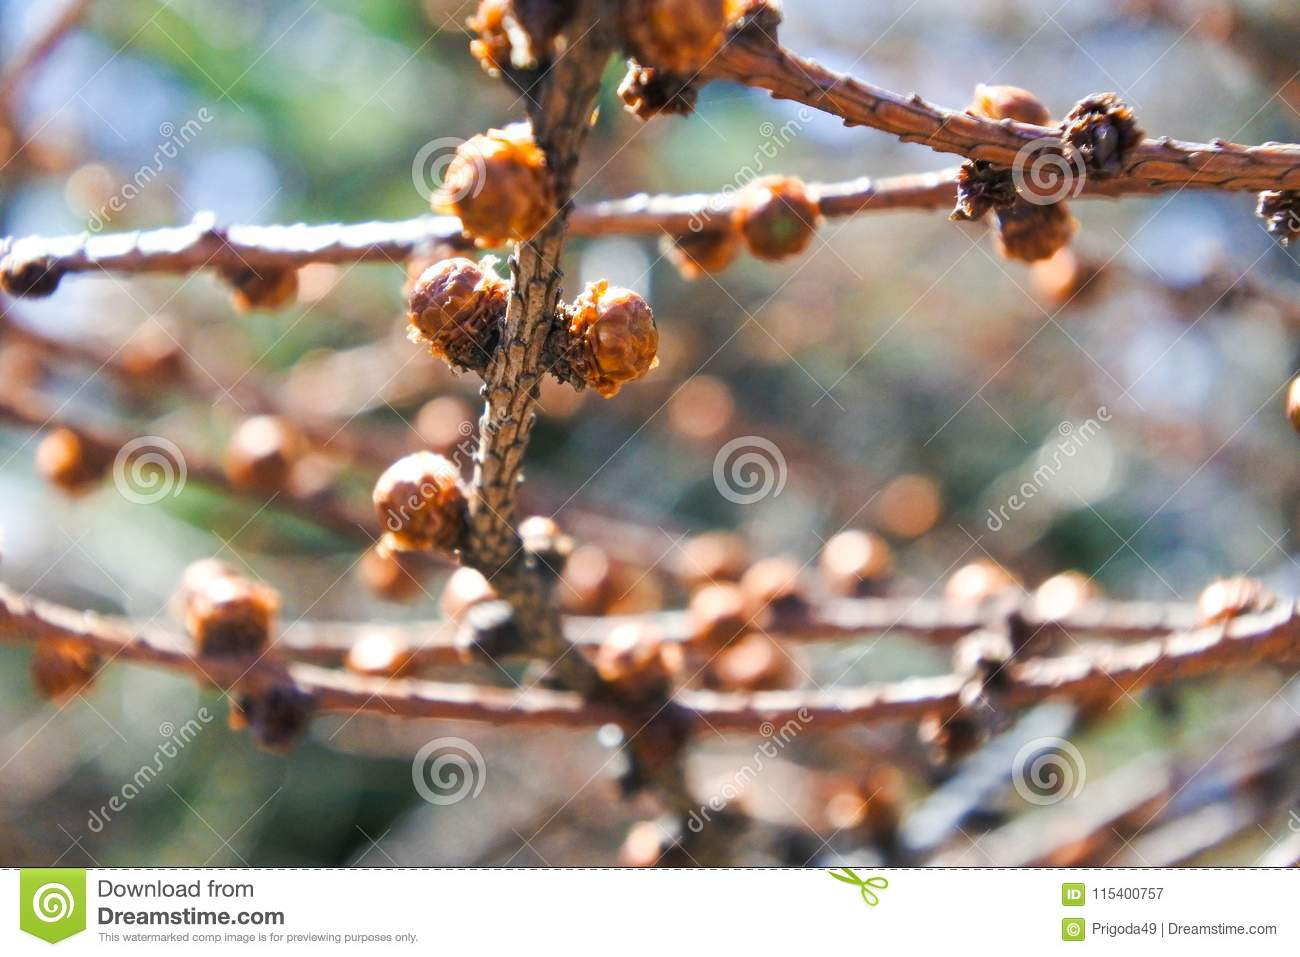 Awaking leaves on a tree branches